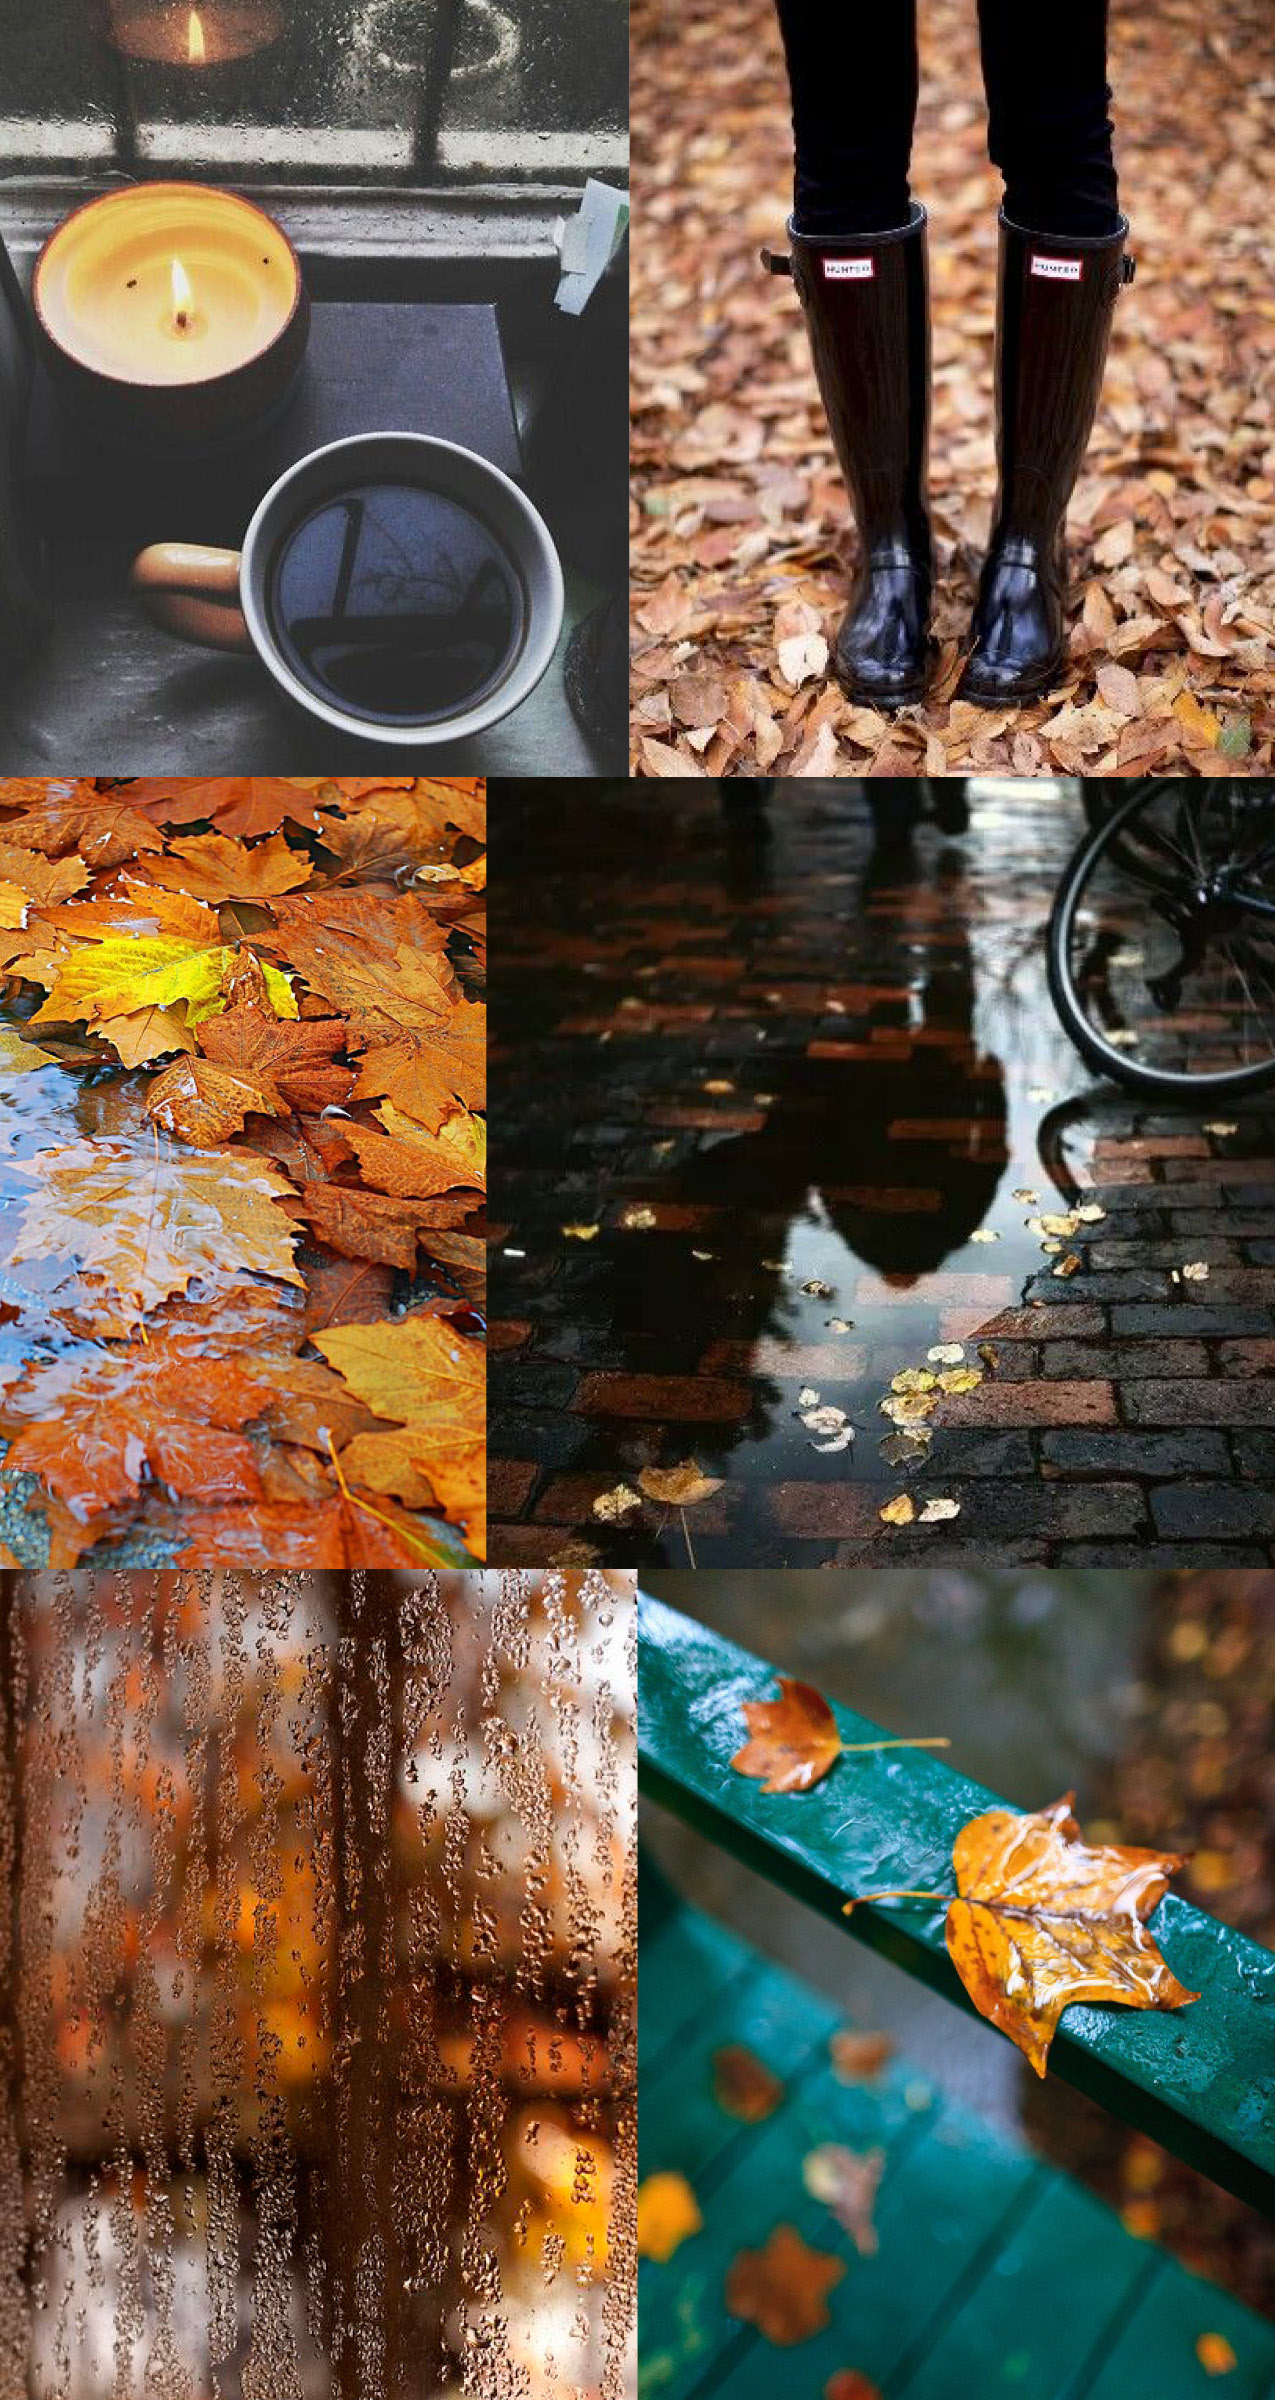 Rain Fall On Flowers Wallpaper Moodboard Archives Page 2 Of 9 Elements